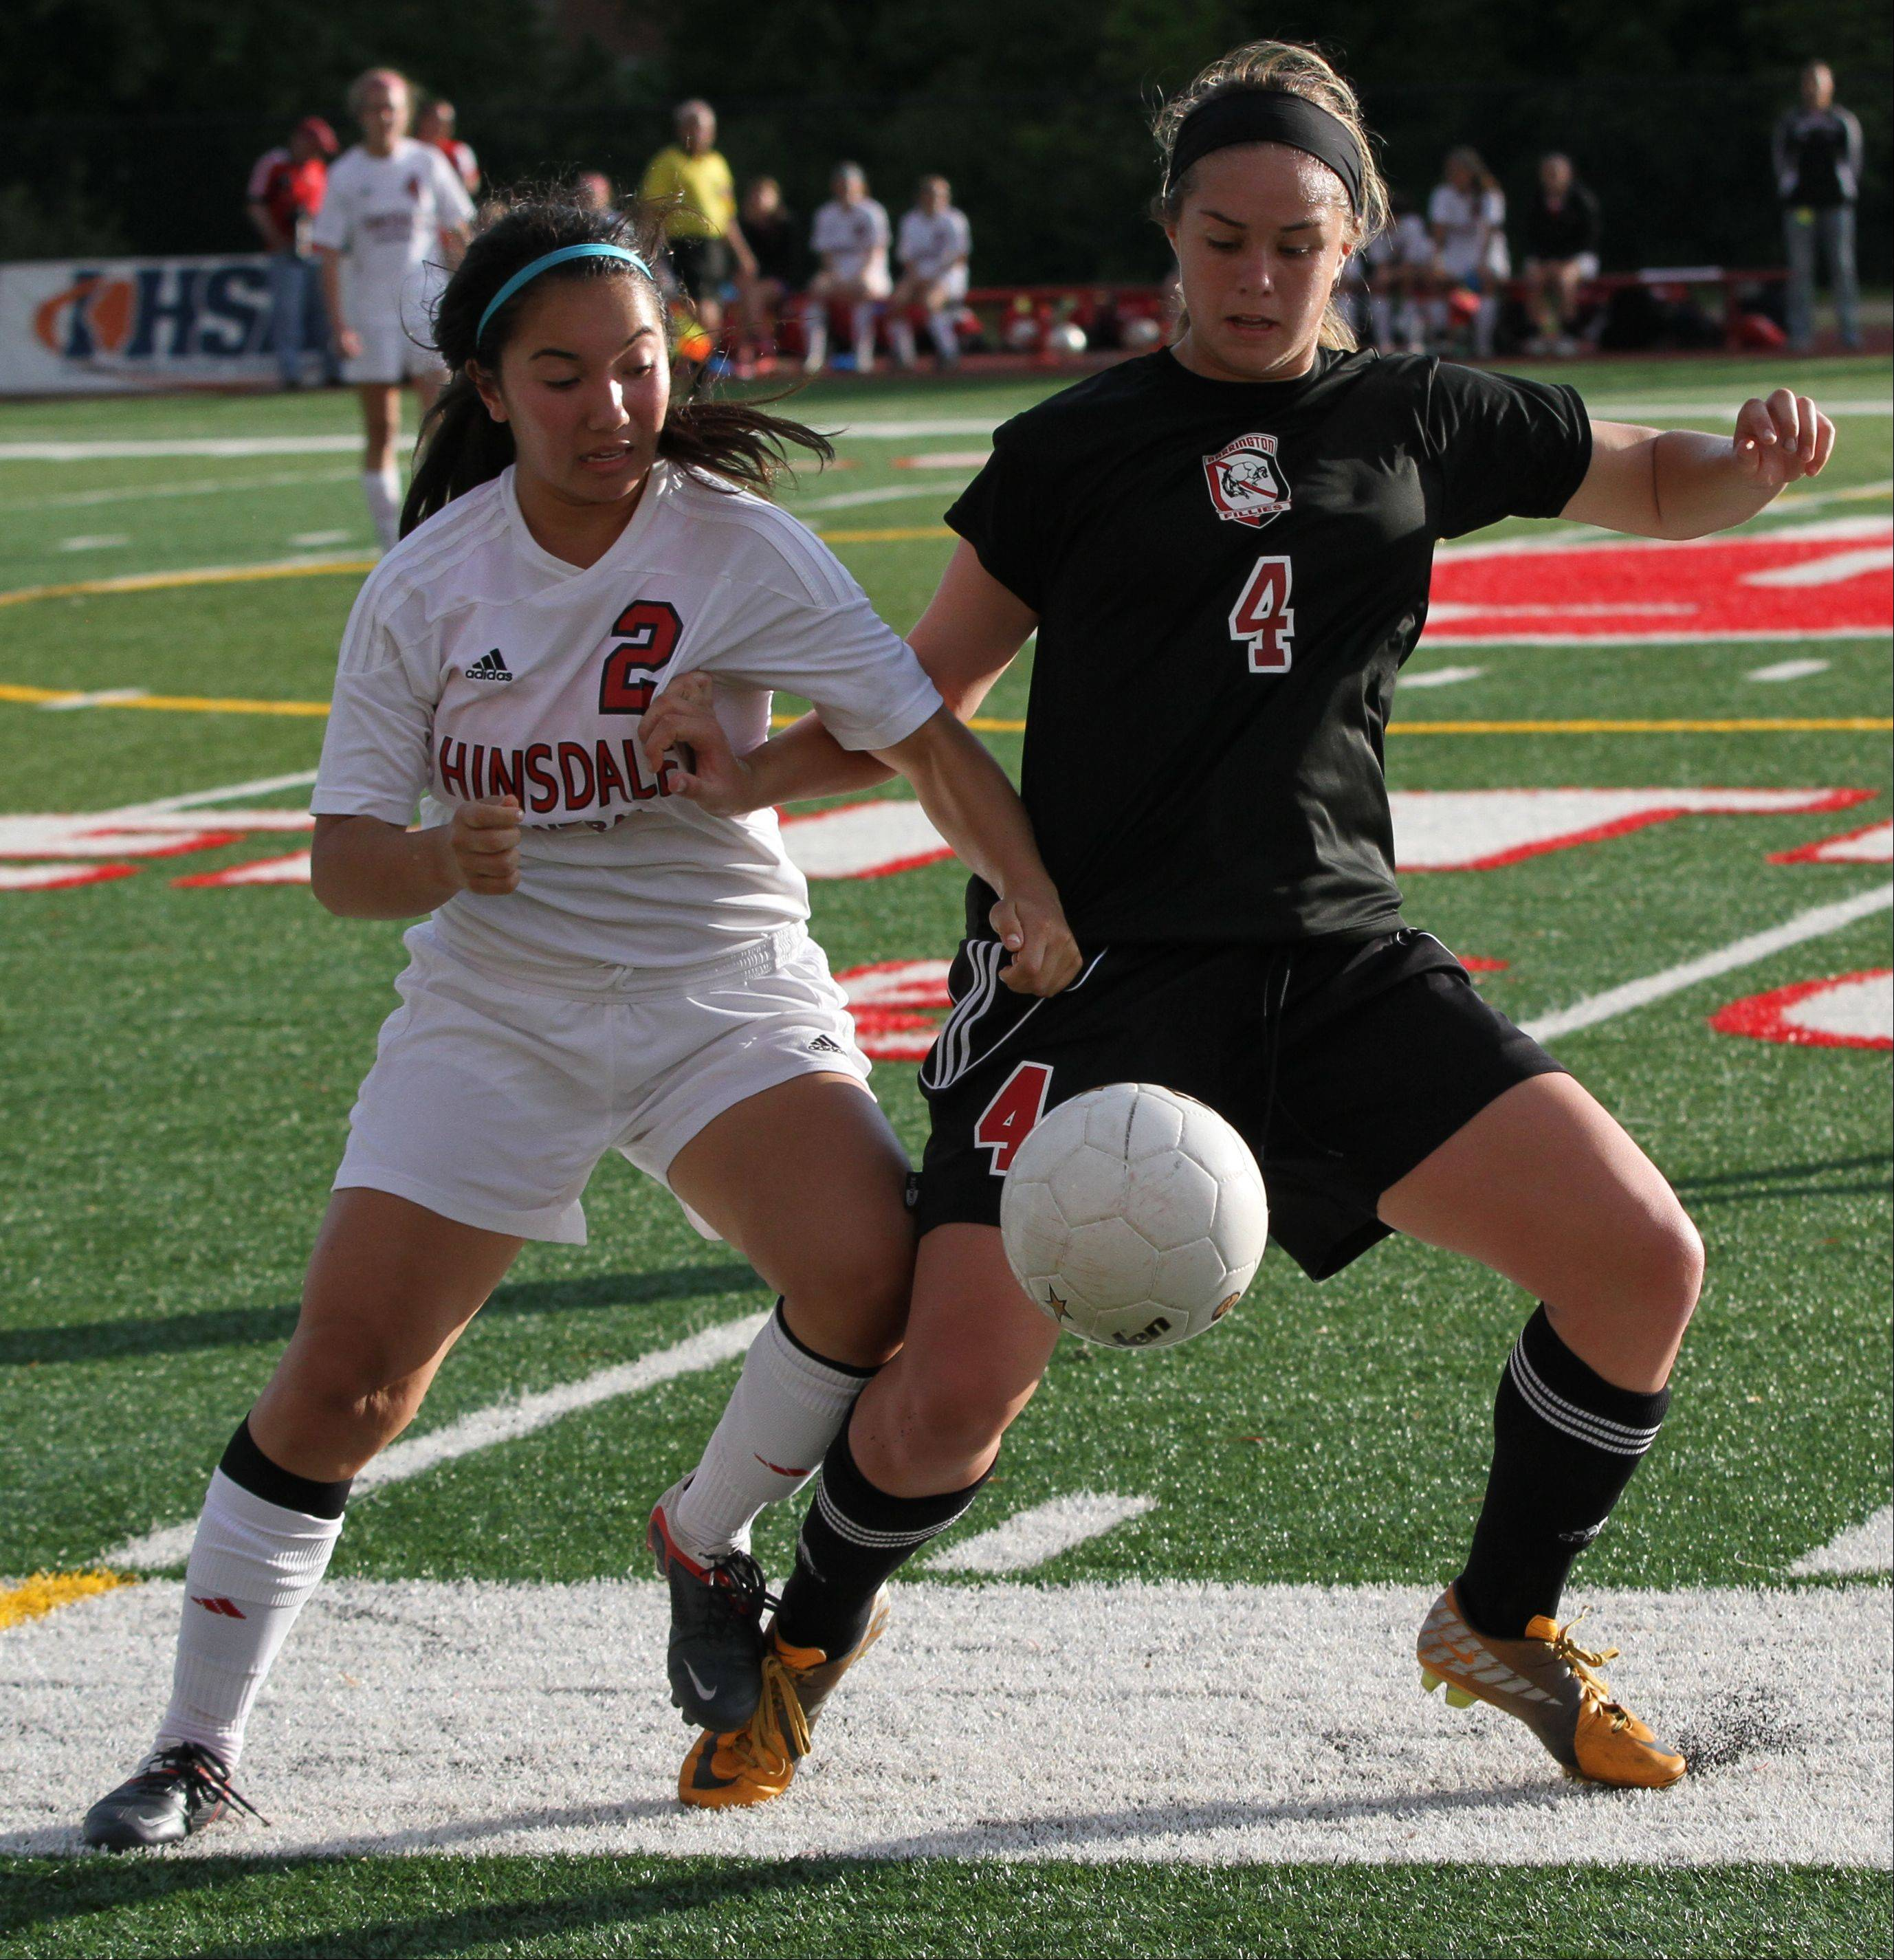 Hinsdale Central's Alison Cerny, left, battles Barrington's Mia Calamari for the ball in the Class 3A girls soccer state semifinals Friday at North Central College.